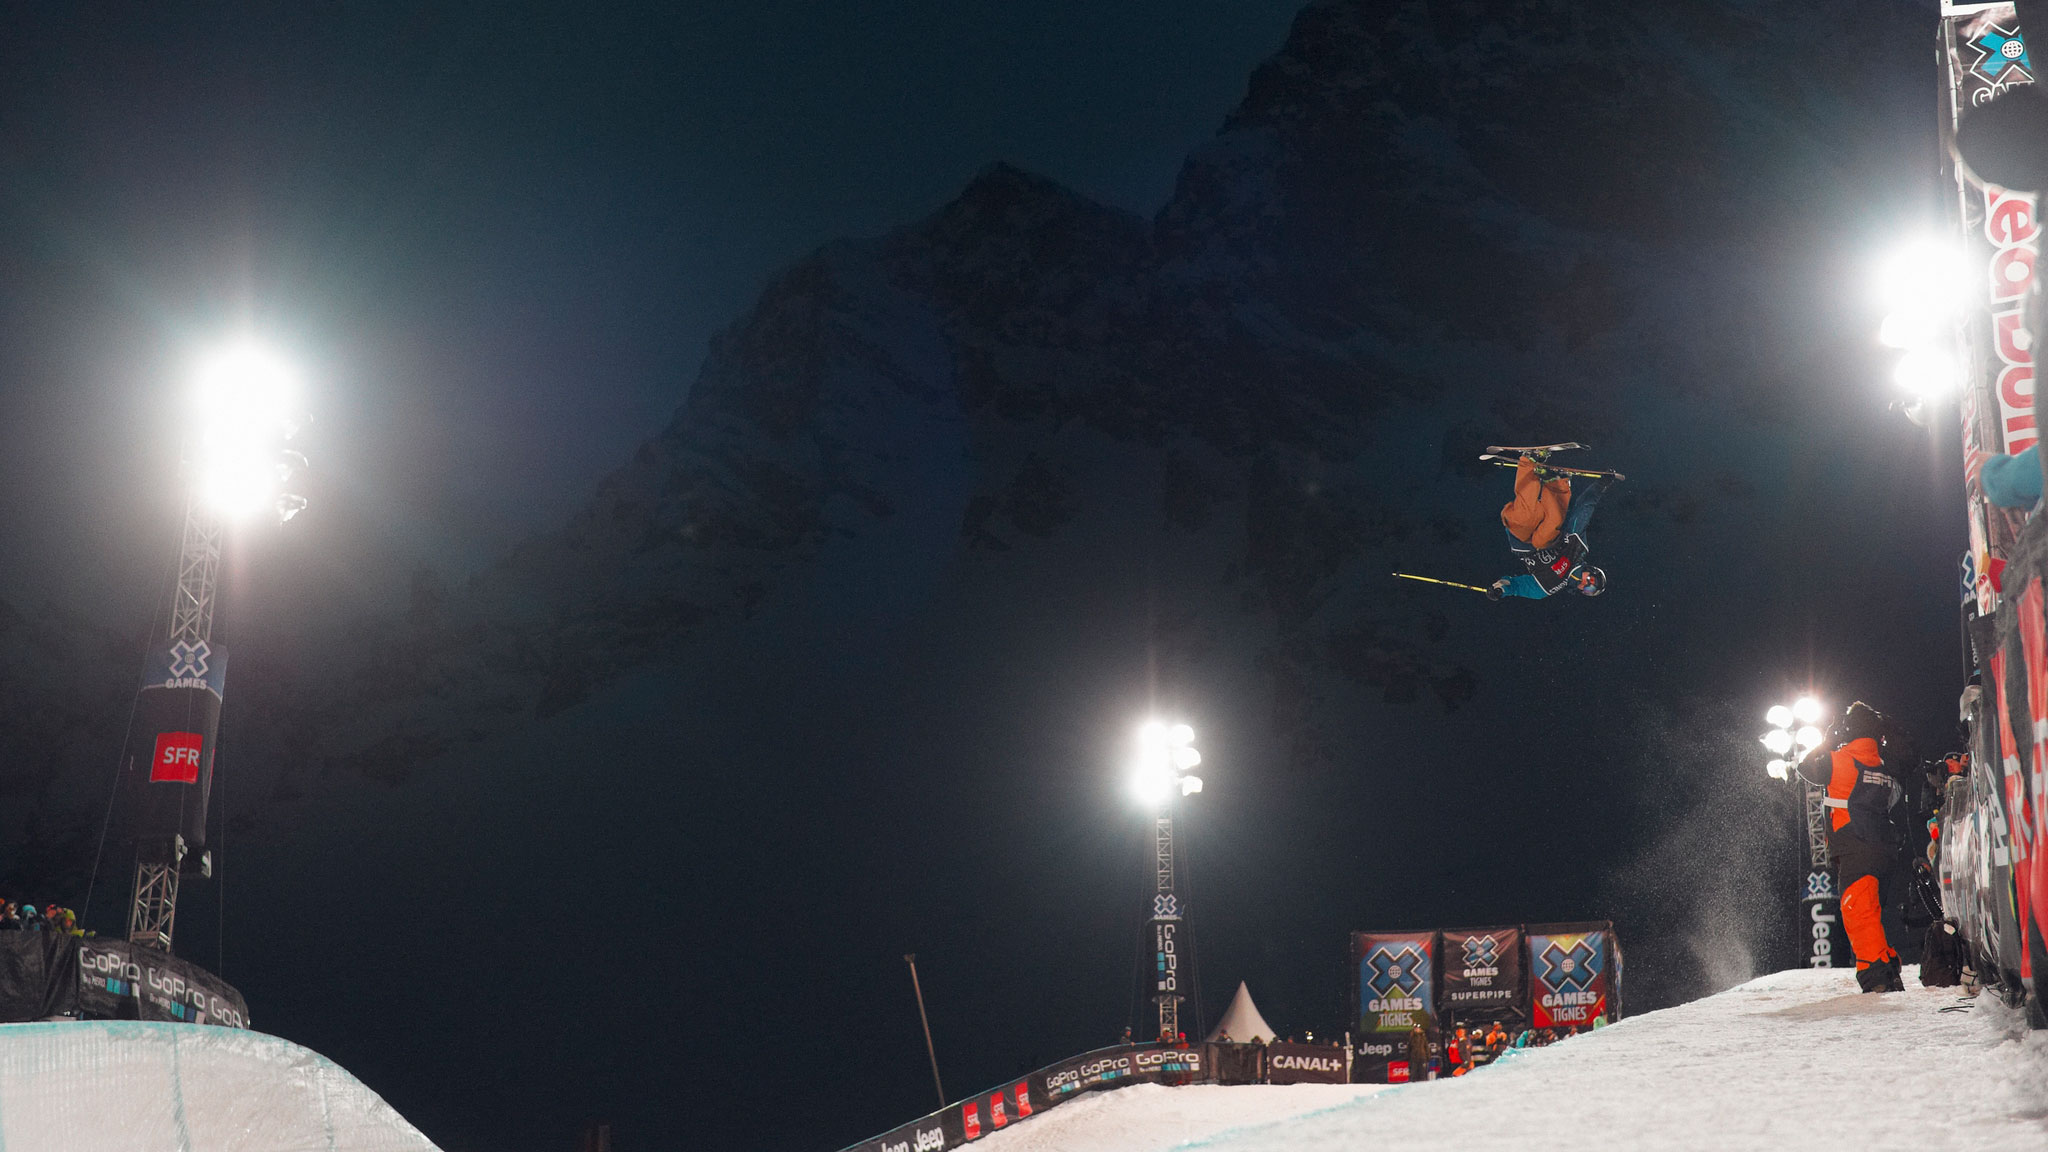 David Wise became the first skier to land back-to-back double cork 1260s at the X Games in Aspen.